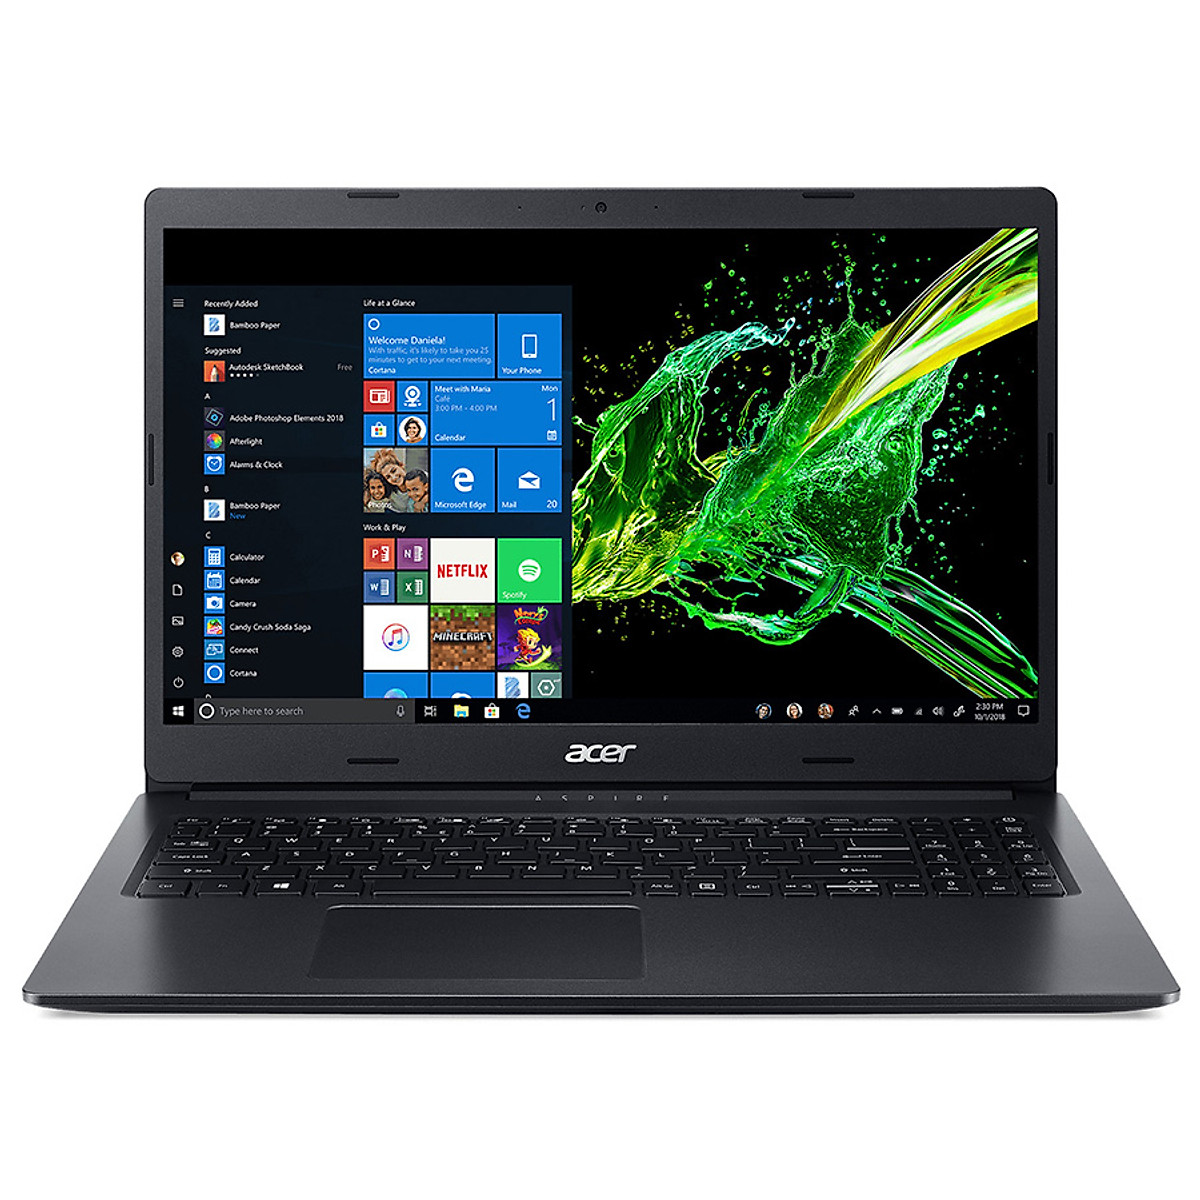 [Mới 100% Full box] Laptop Acer Aspire 3 A315-55G-504M  - Intel Core i5